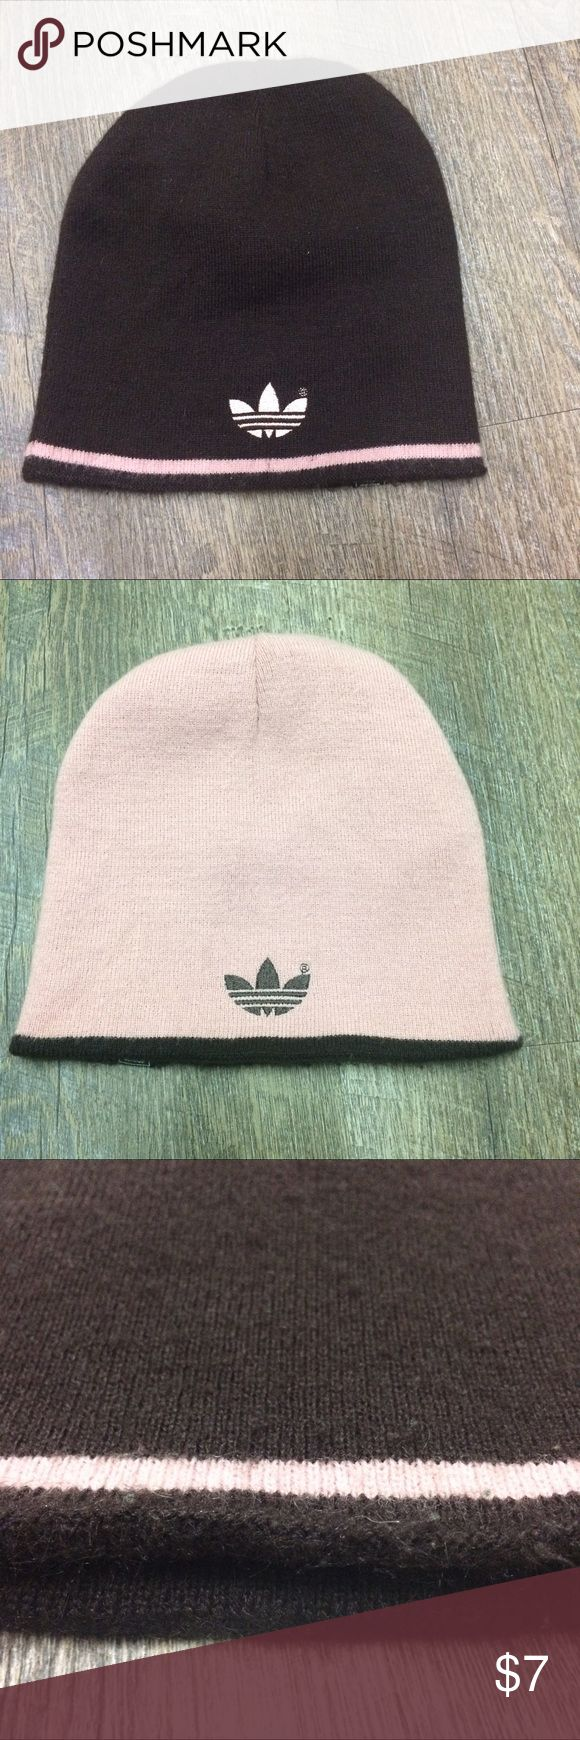 ADIDAS Beanie Reversible Pink and Brown Beanie - only flaw is the pilling (pictured) adidas Accessories Hats